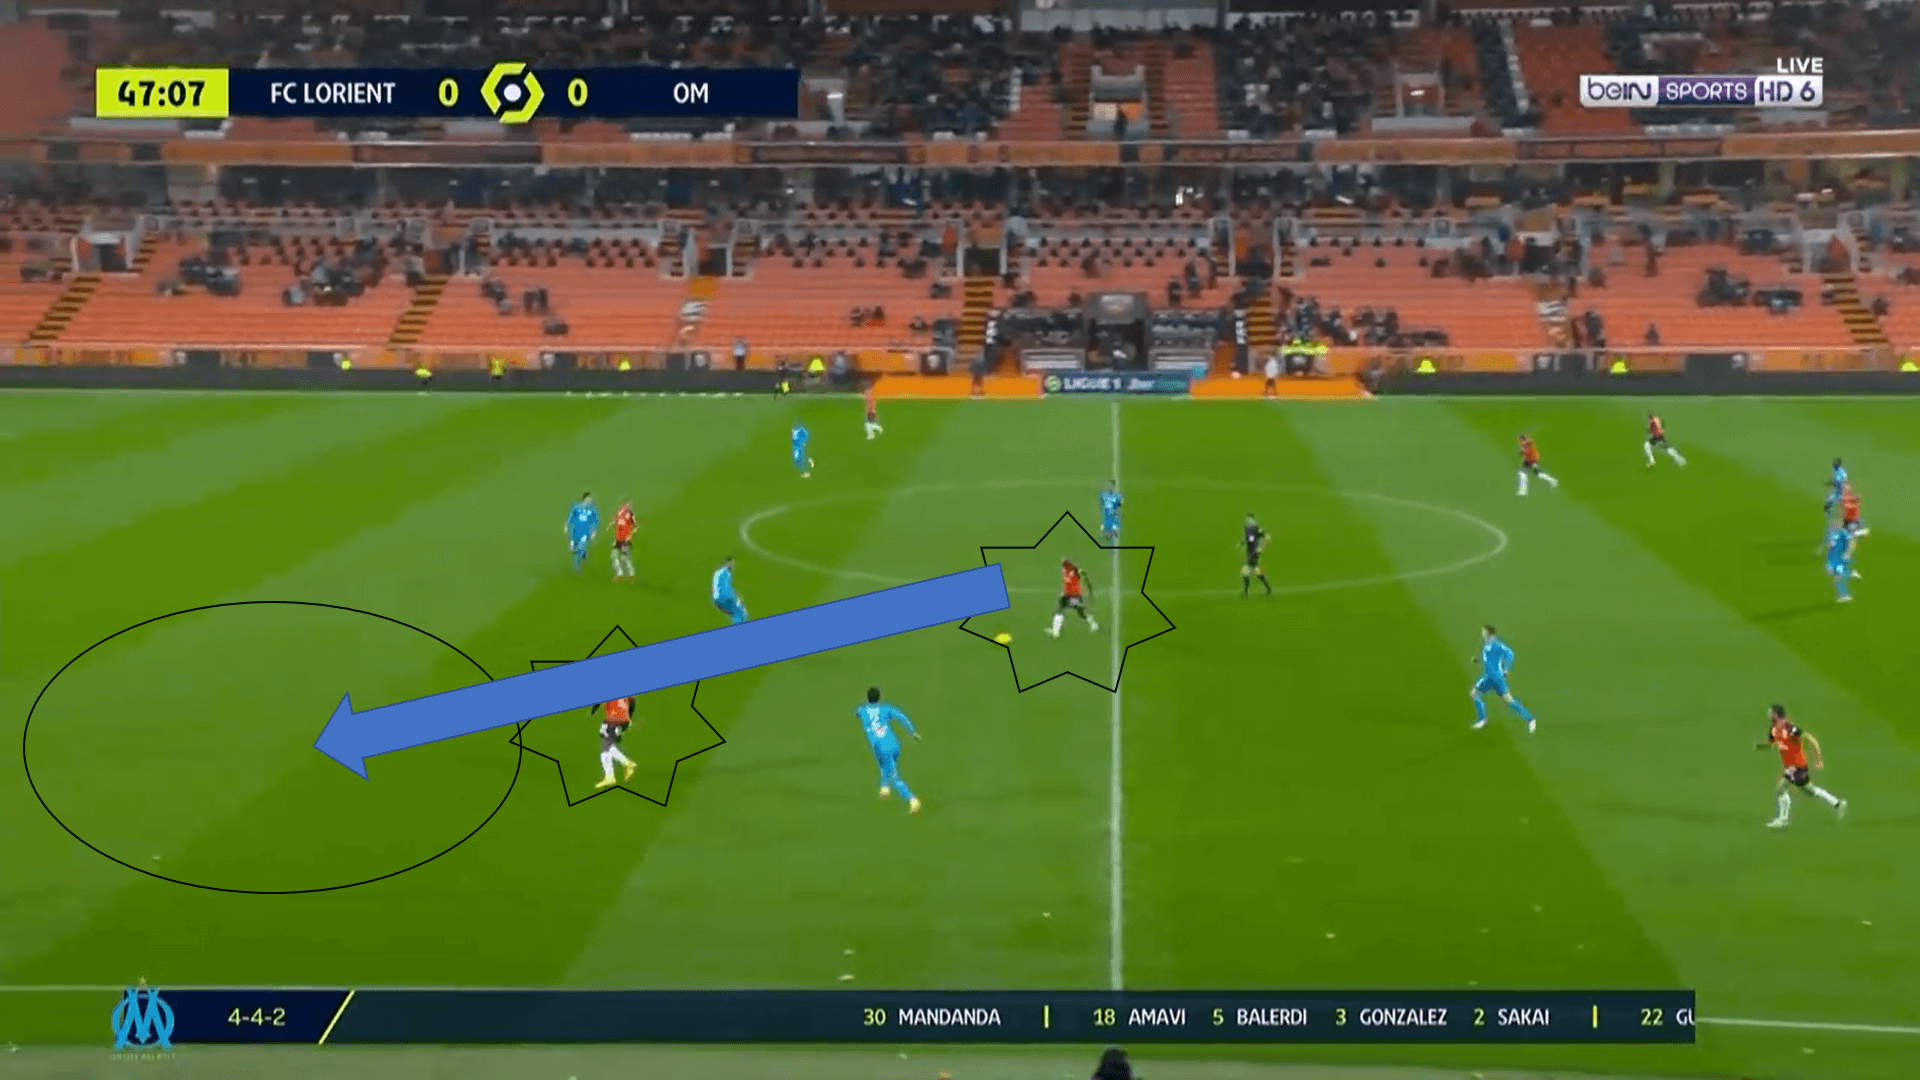 Ligue 1 2020/21: Lorient vs Marseille - tactical analysis tactics